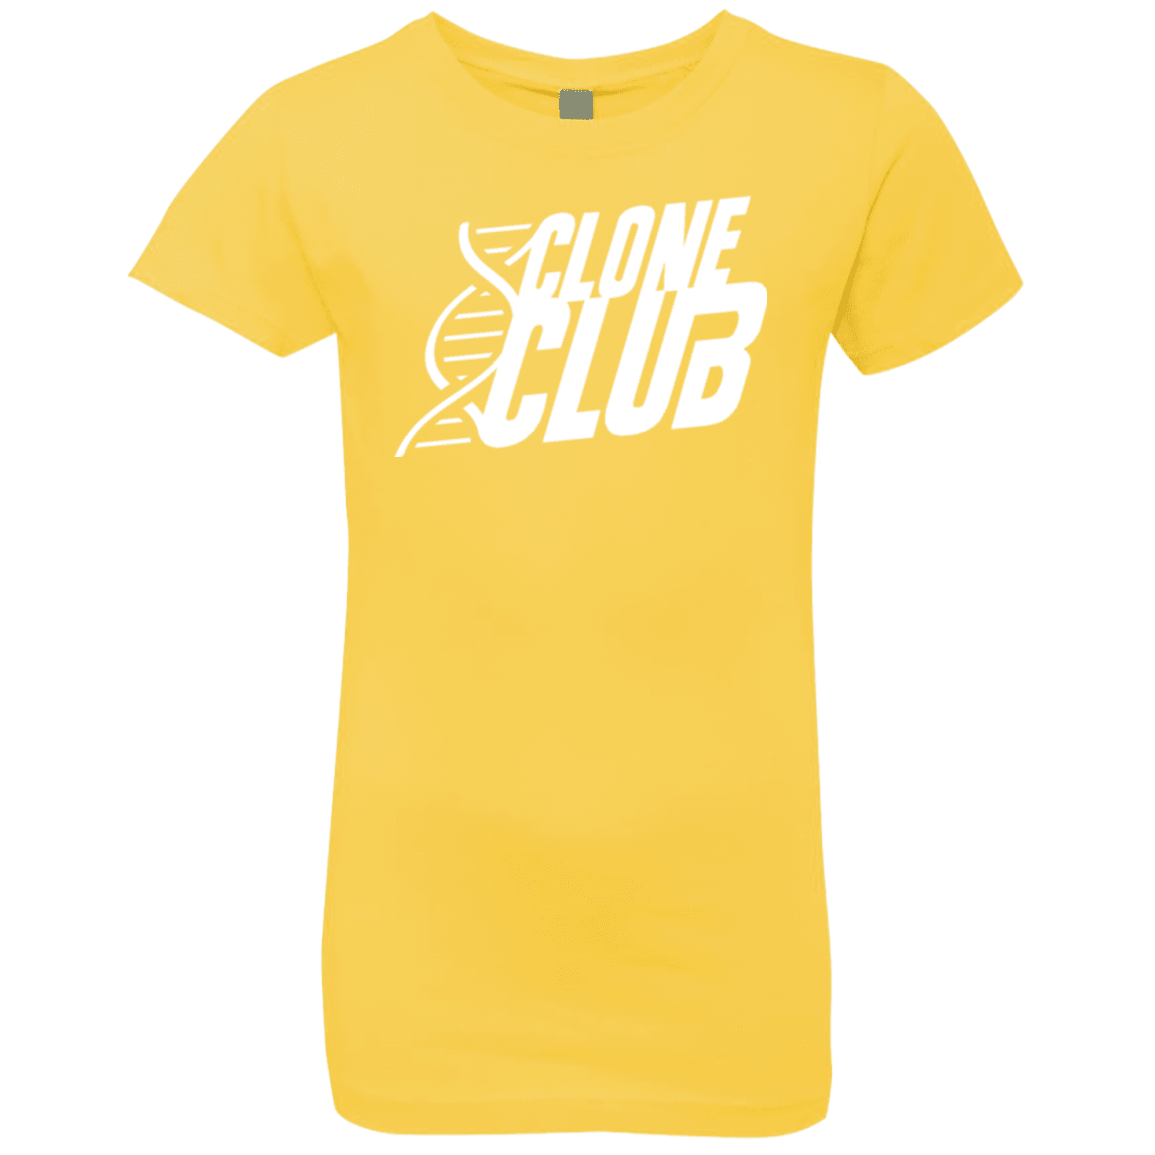 Clone Club Girls Premium T-Shirt